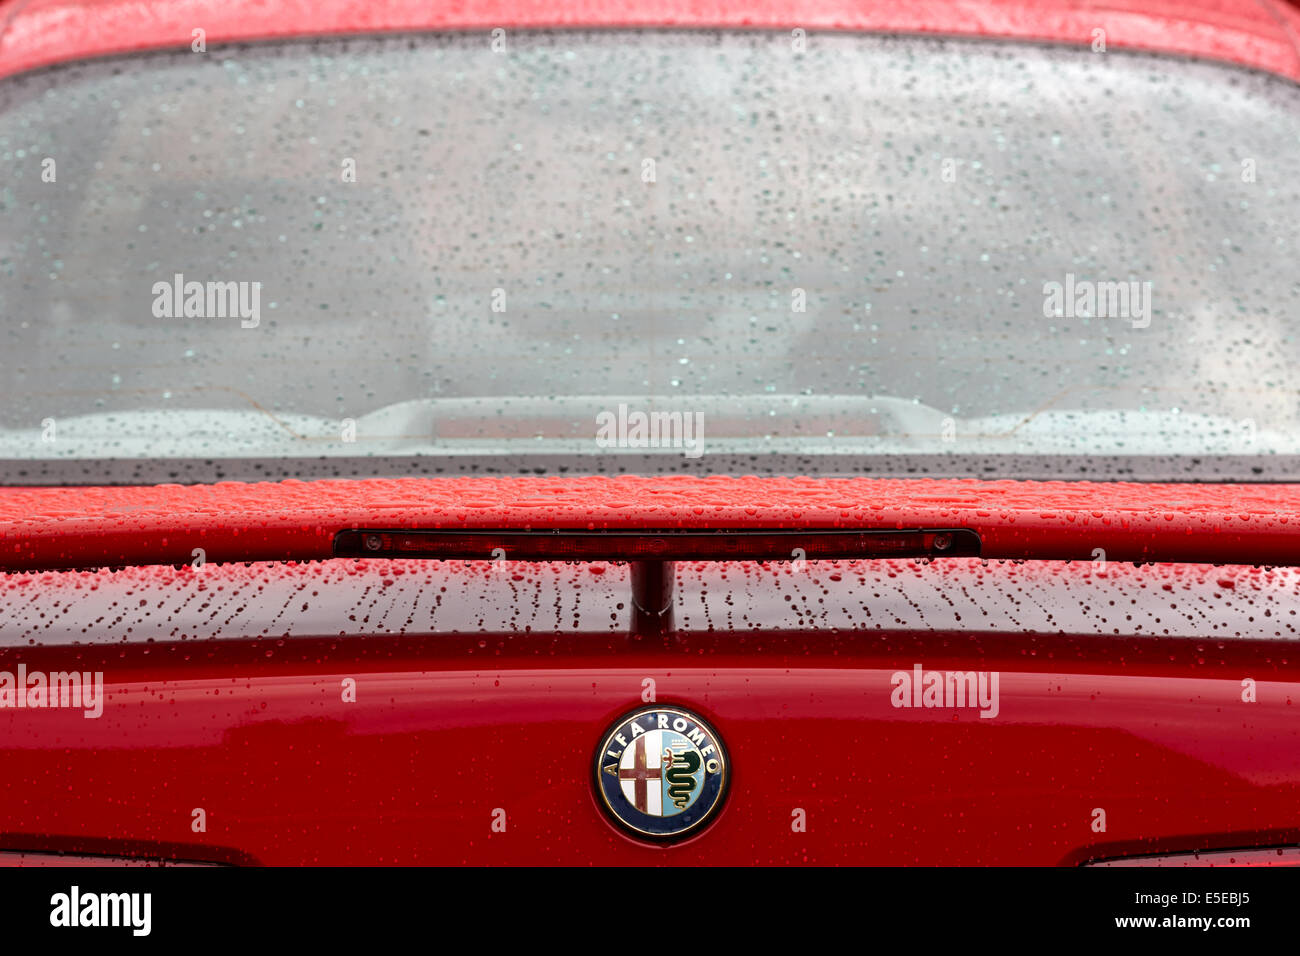 rear spoiler and raindrops on a red Alfa Romeo 156 - Stock Image